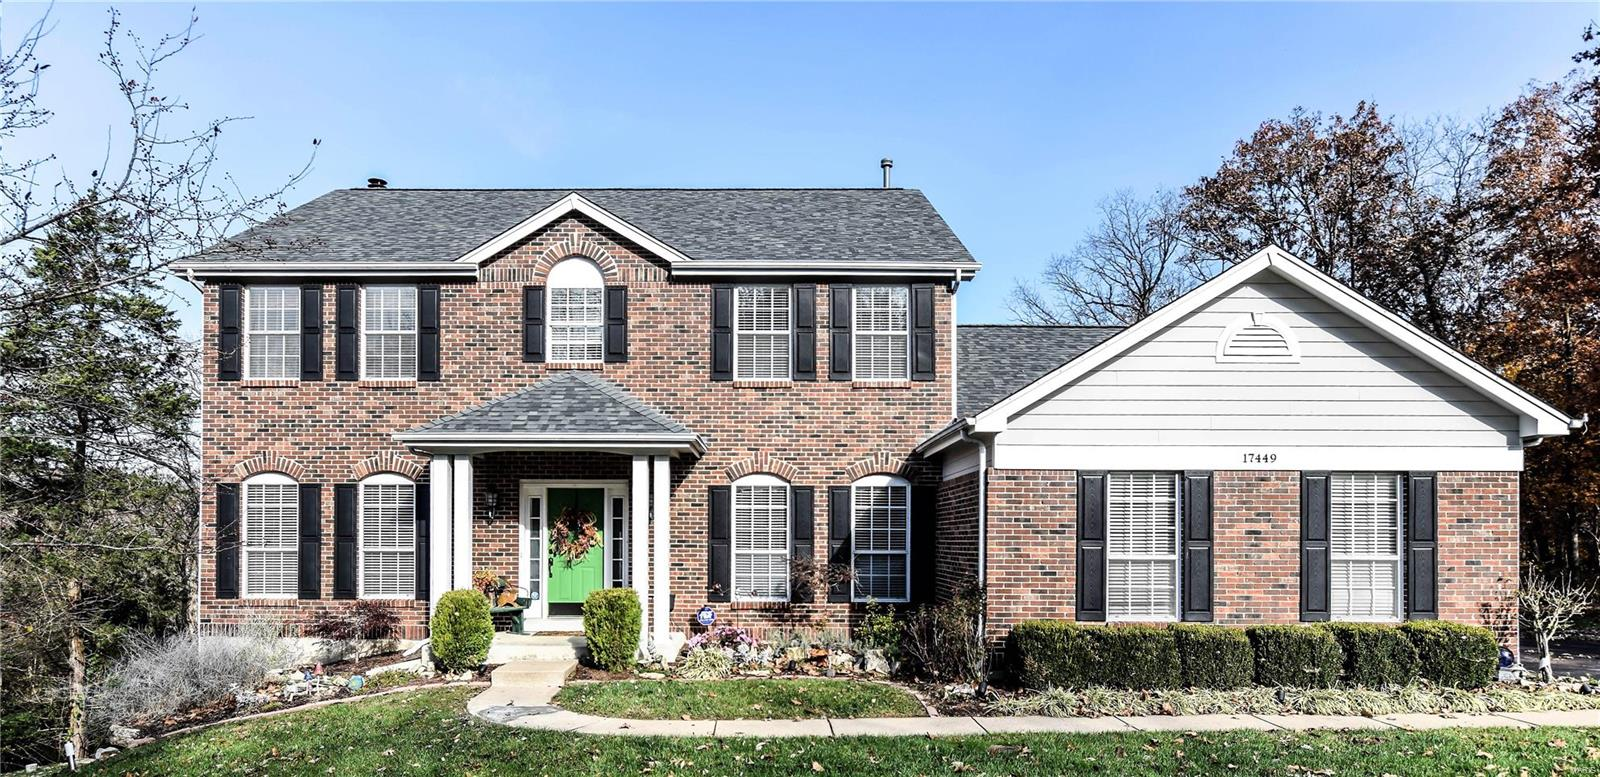 17449 Radcliffe Place Drive, Wildwood, MO 63025